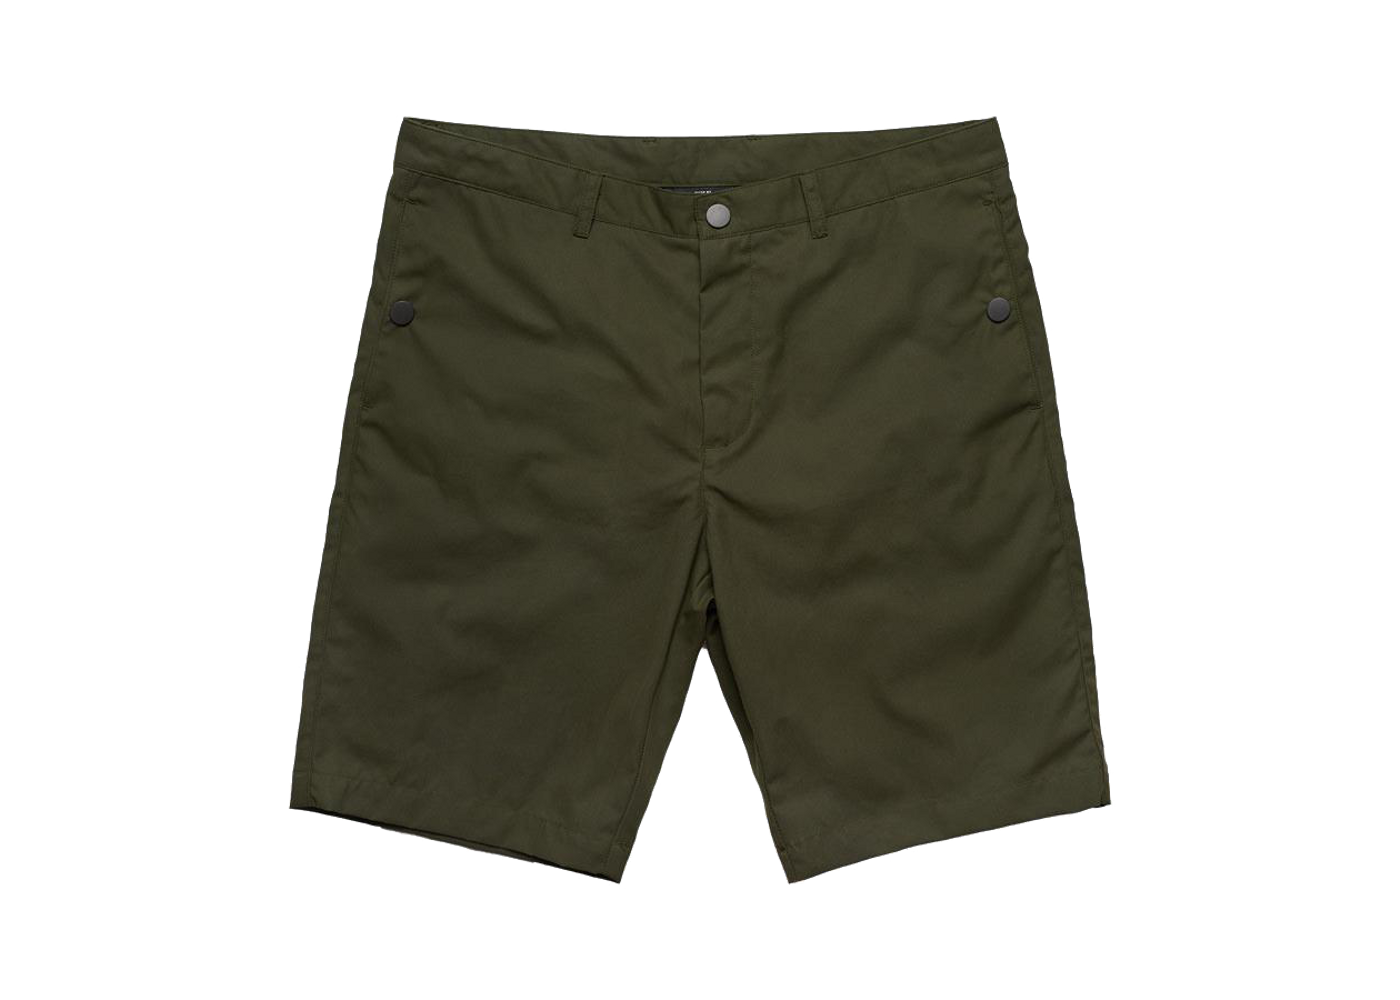 Search and State: Olive Drab Field Shorts